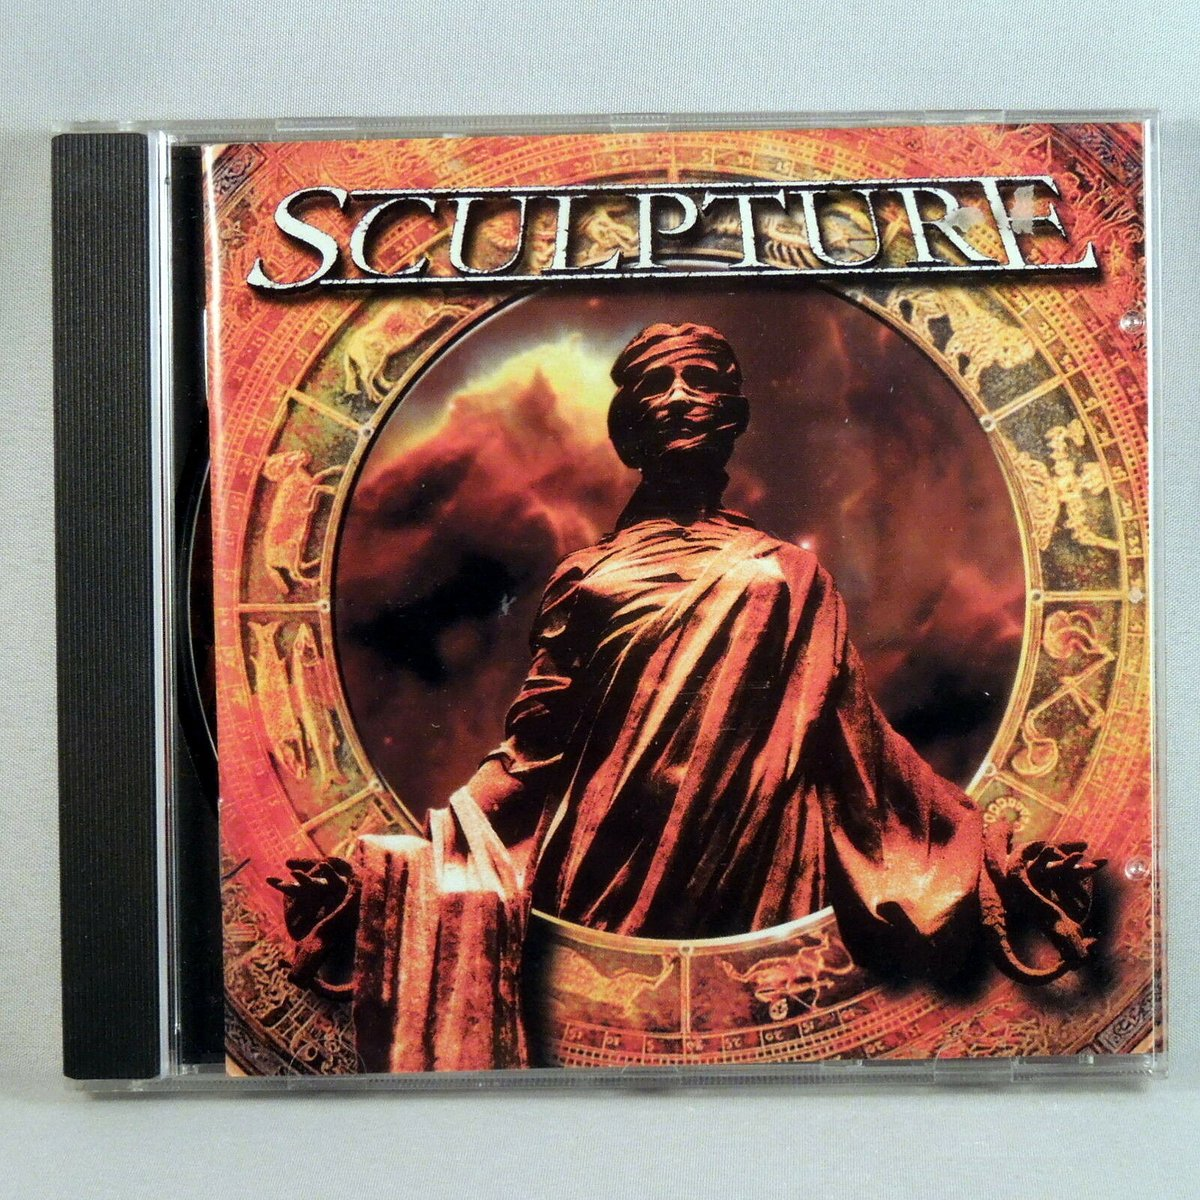 Check out https://ebay.to/3dEiGk6  SCULPTURE - s/t (CD 1999 Nuclear Blast Records)  #SCULPTURE #st #Album #SelfTitled #CD #1999 #NuclearBlastRecords #PowerMetal #ProgressiveMetal #HeavyMetal #NuclearBlast #MetalCentre http://www.shop.metalcentre.com  #VersalCentre #CDs #Patches #TShirtspic.twitter.com/IEp1MoQoew